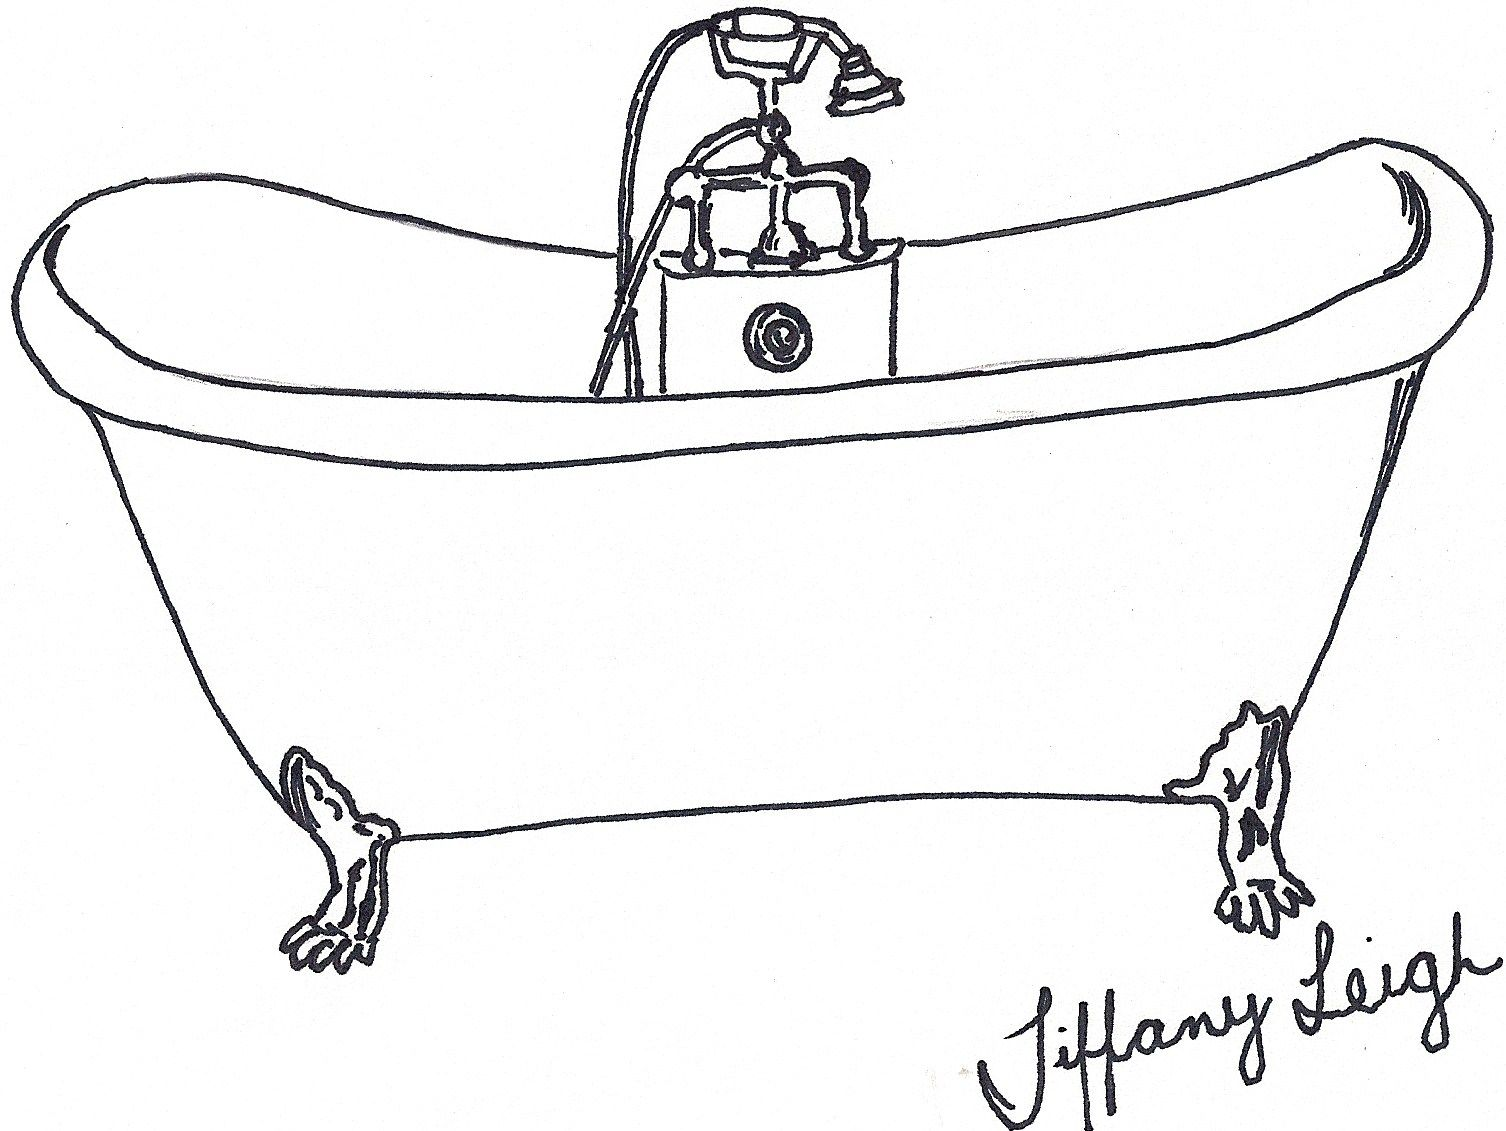 Black Line Drawing Of A Claw Foot Tub